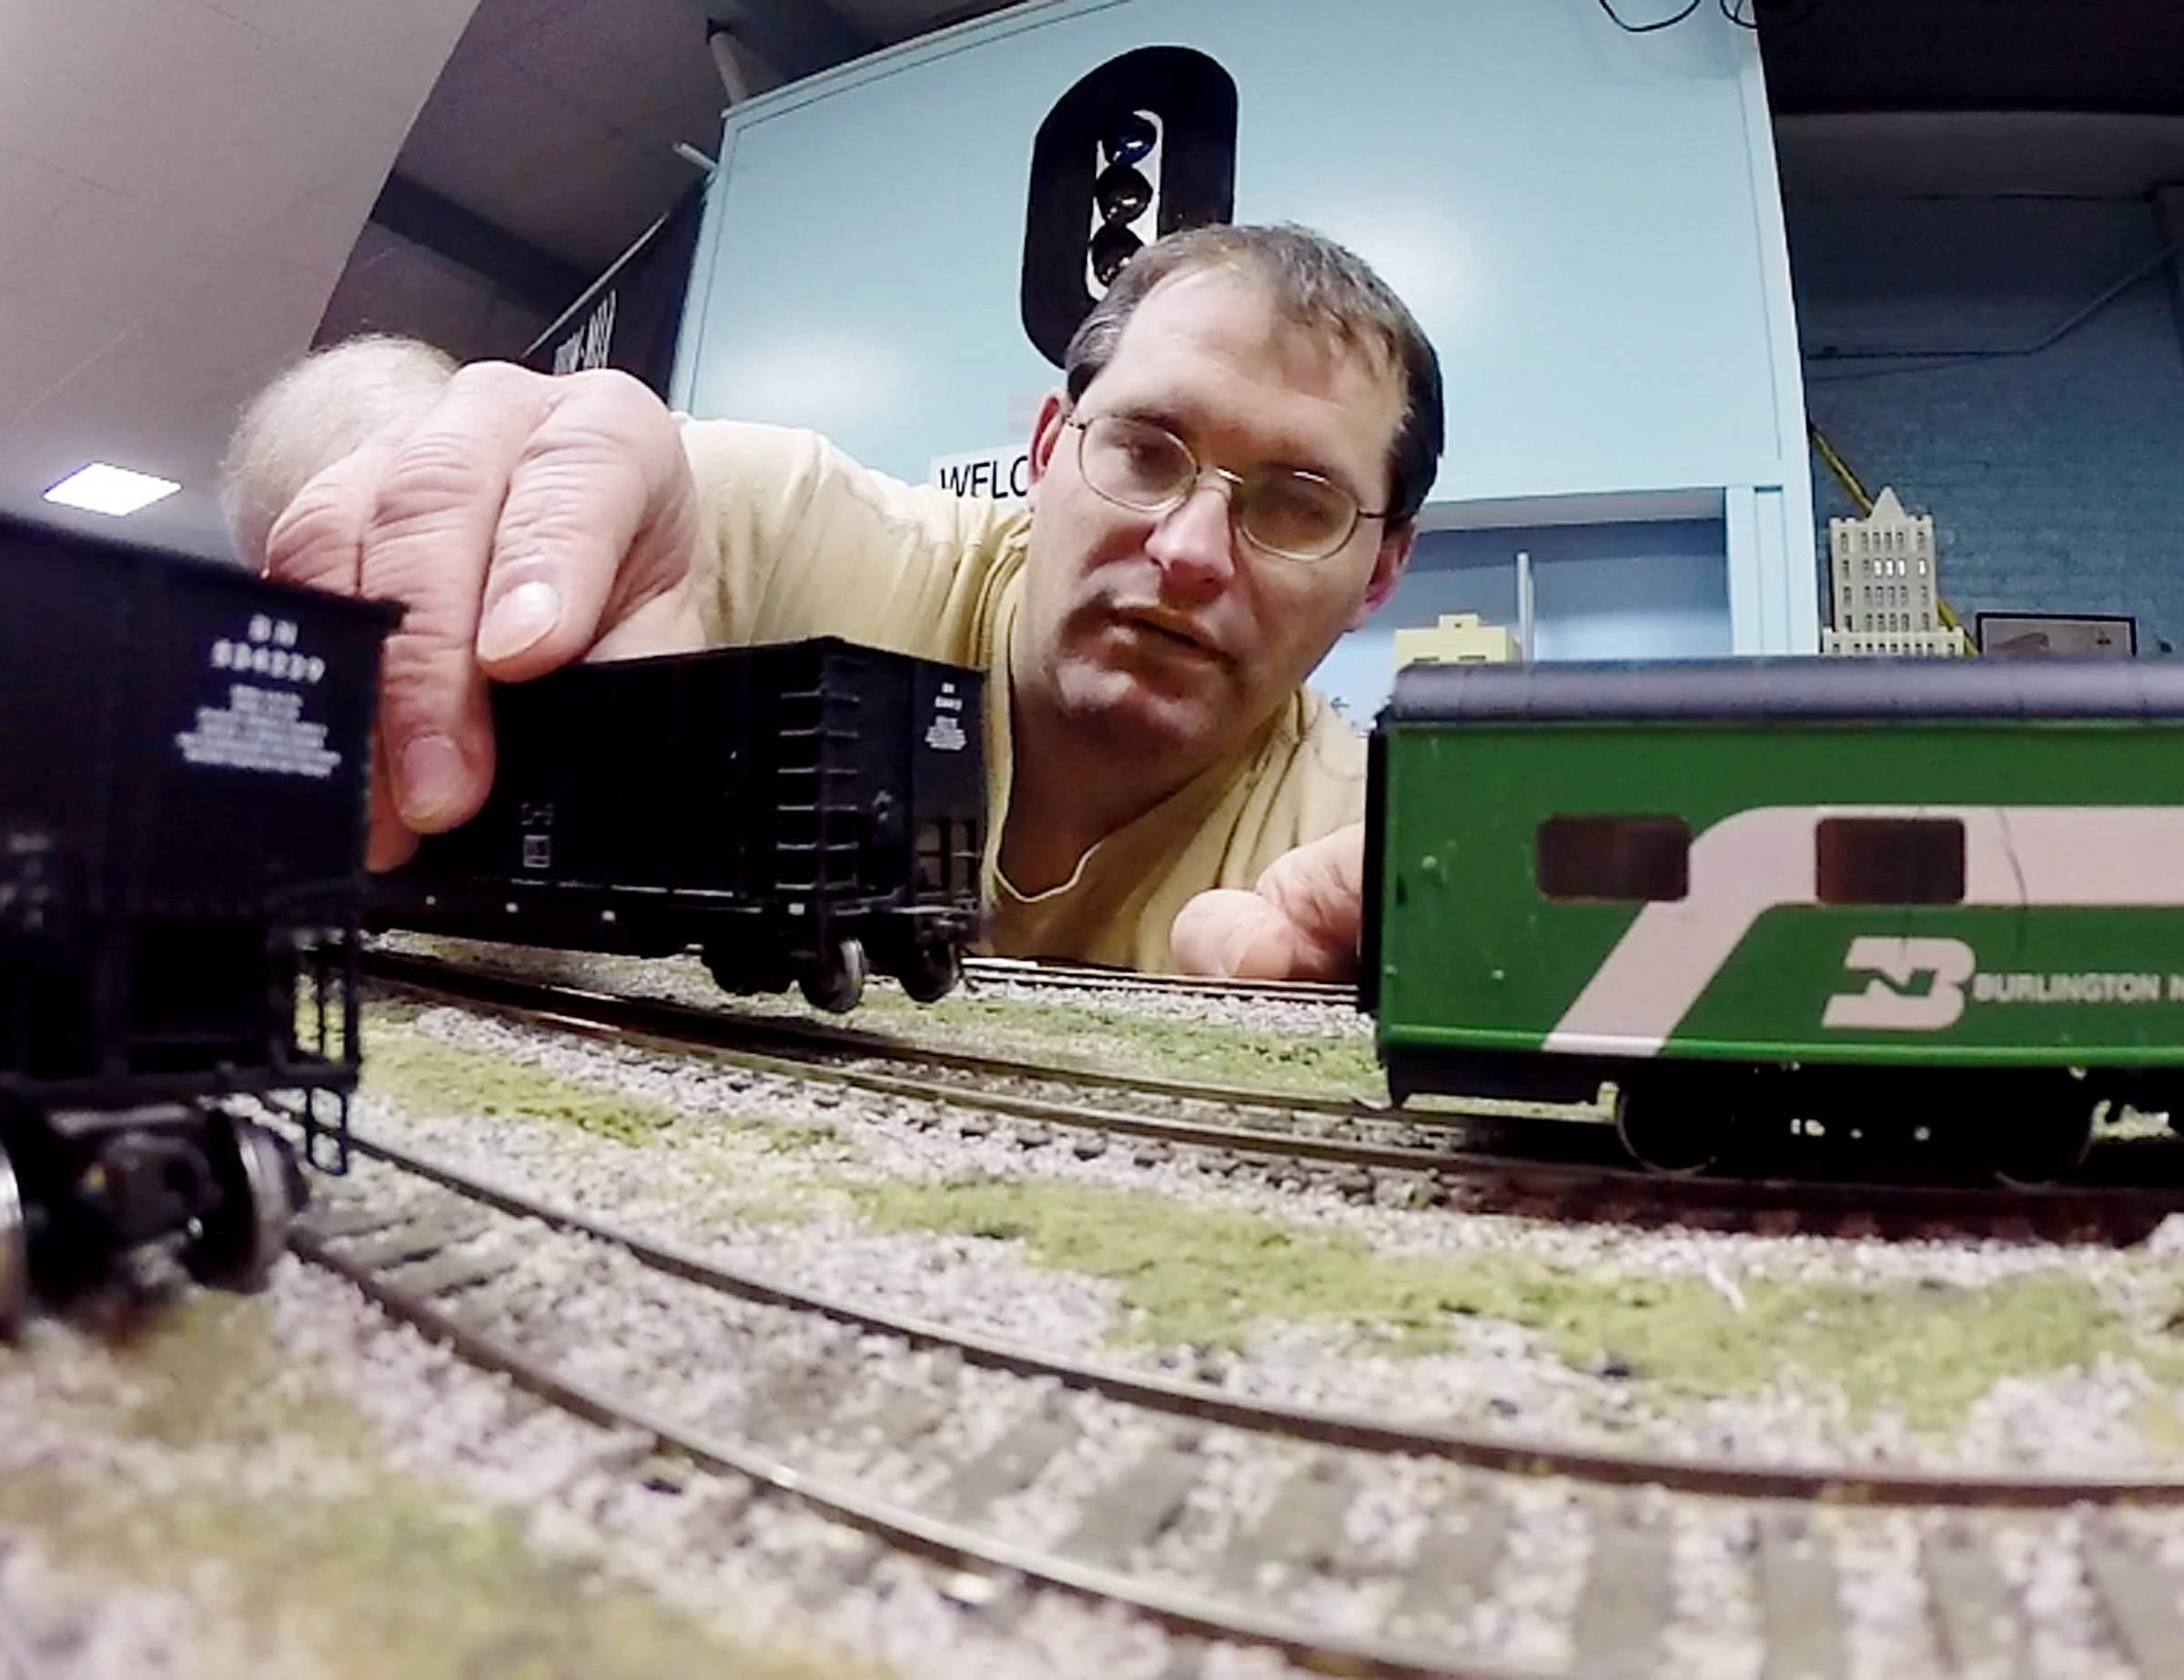 Jim Pechous works above the surface on an HO-scale model train at the Valley Model Railroad Club in South Elgin, but he and club members say you're more likely to find him below the layout, working on the system's complex digital command.